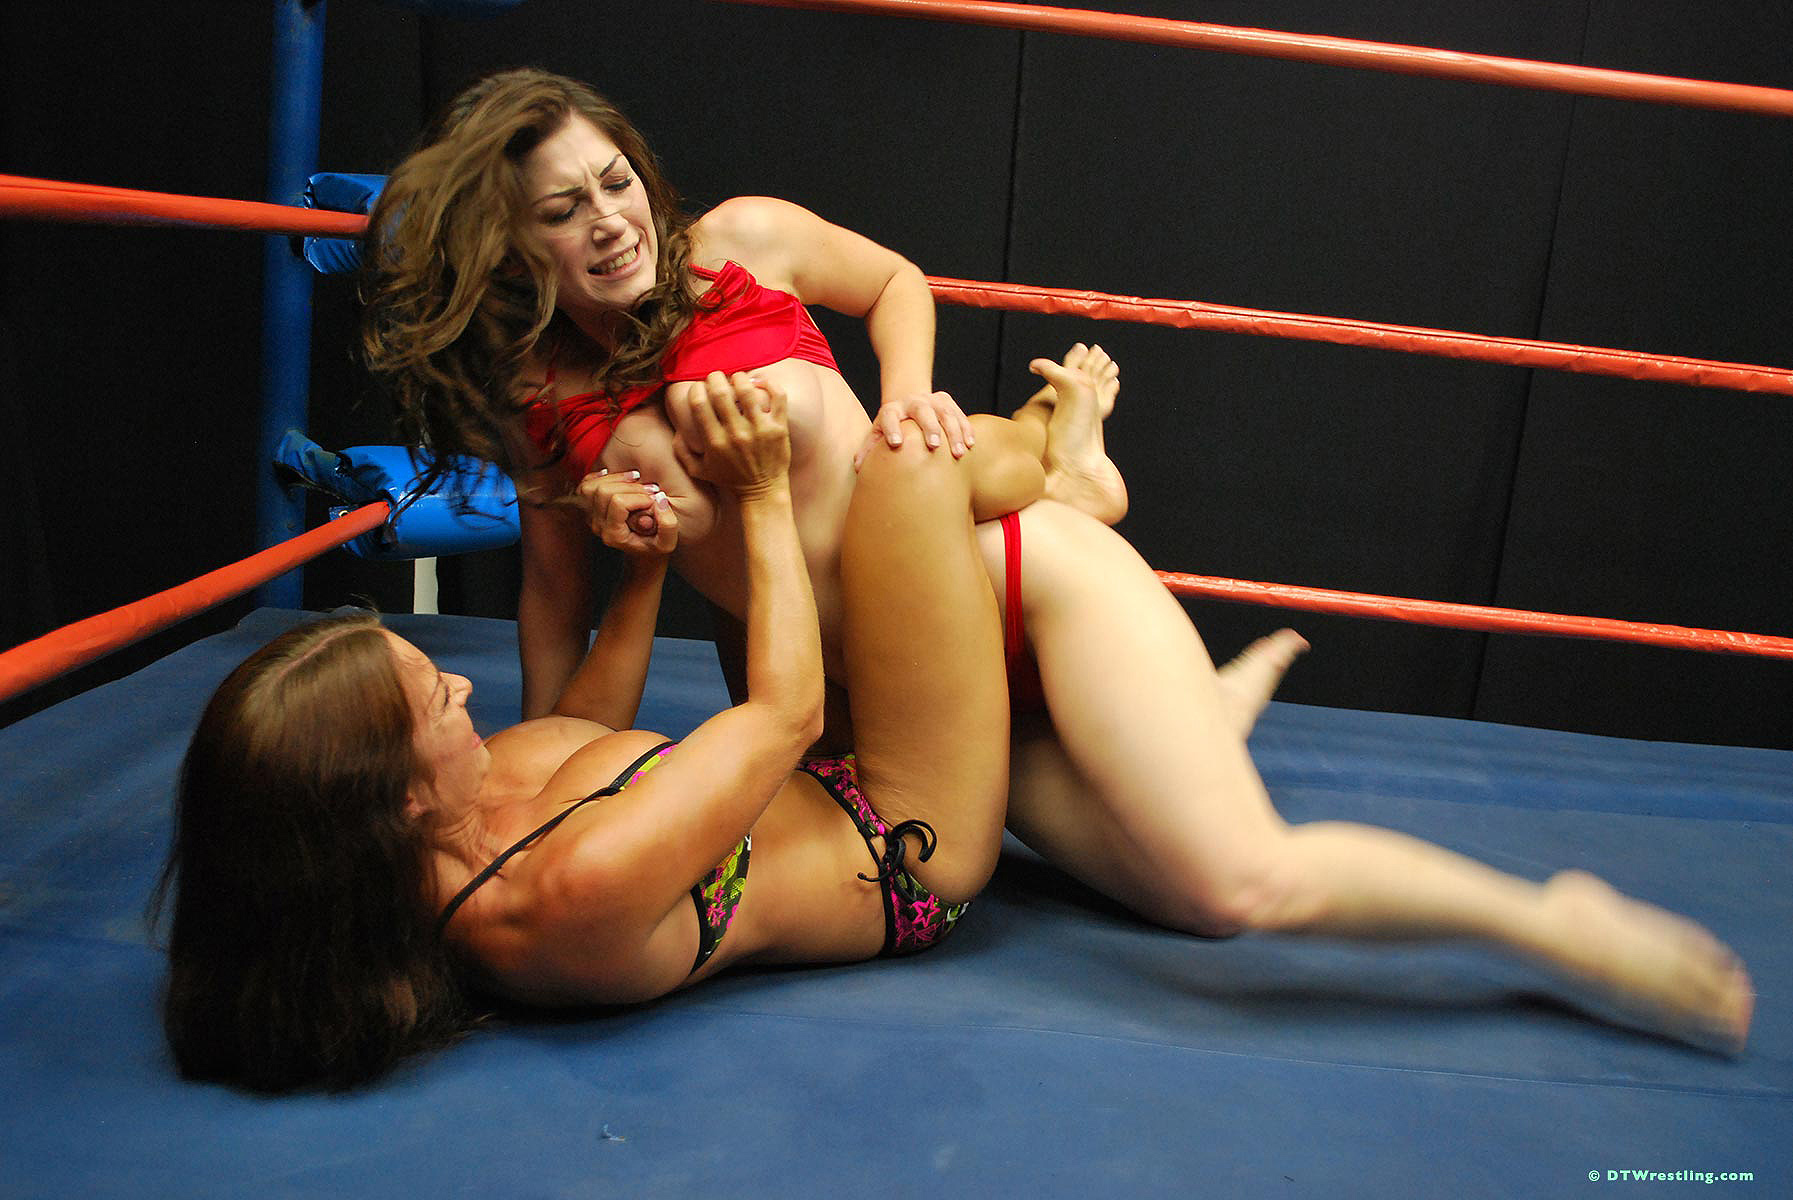 What Mature women wrestling in the nude